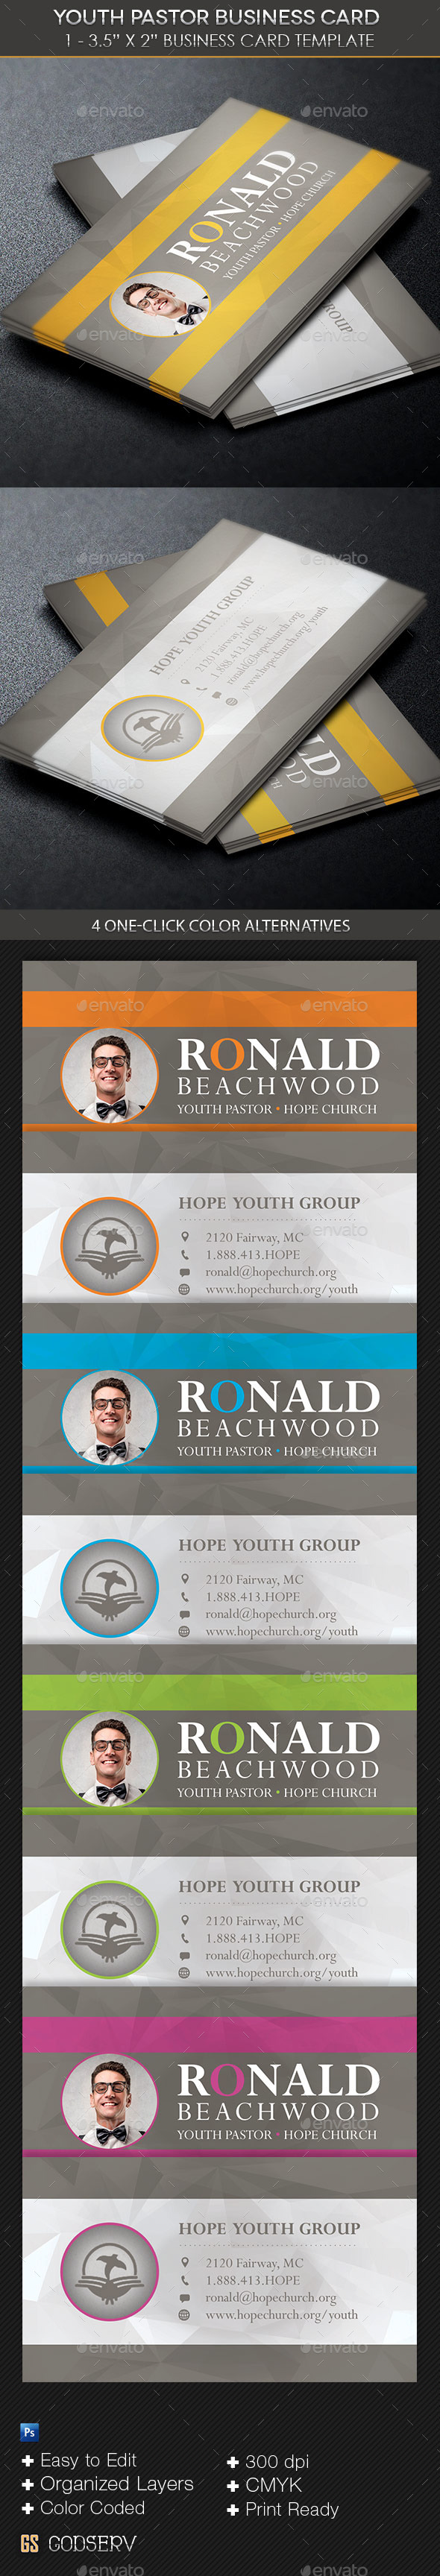 Youth Pastor Business Card Template by Godserv | GraphicRiver